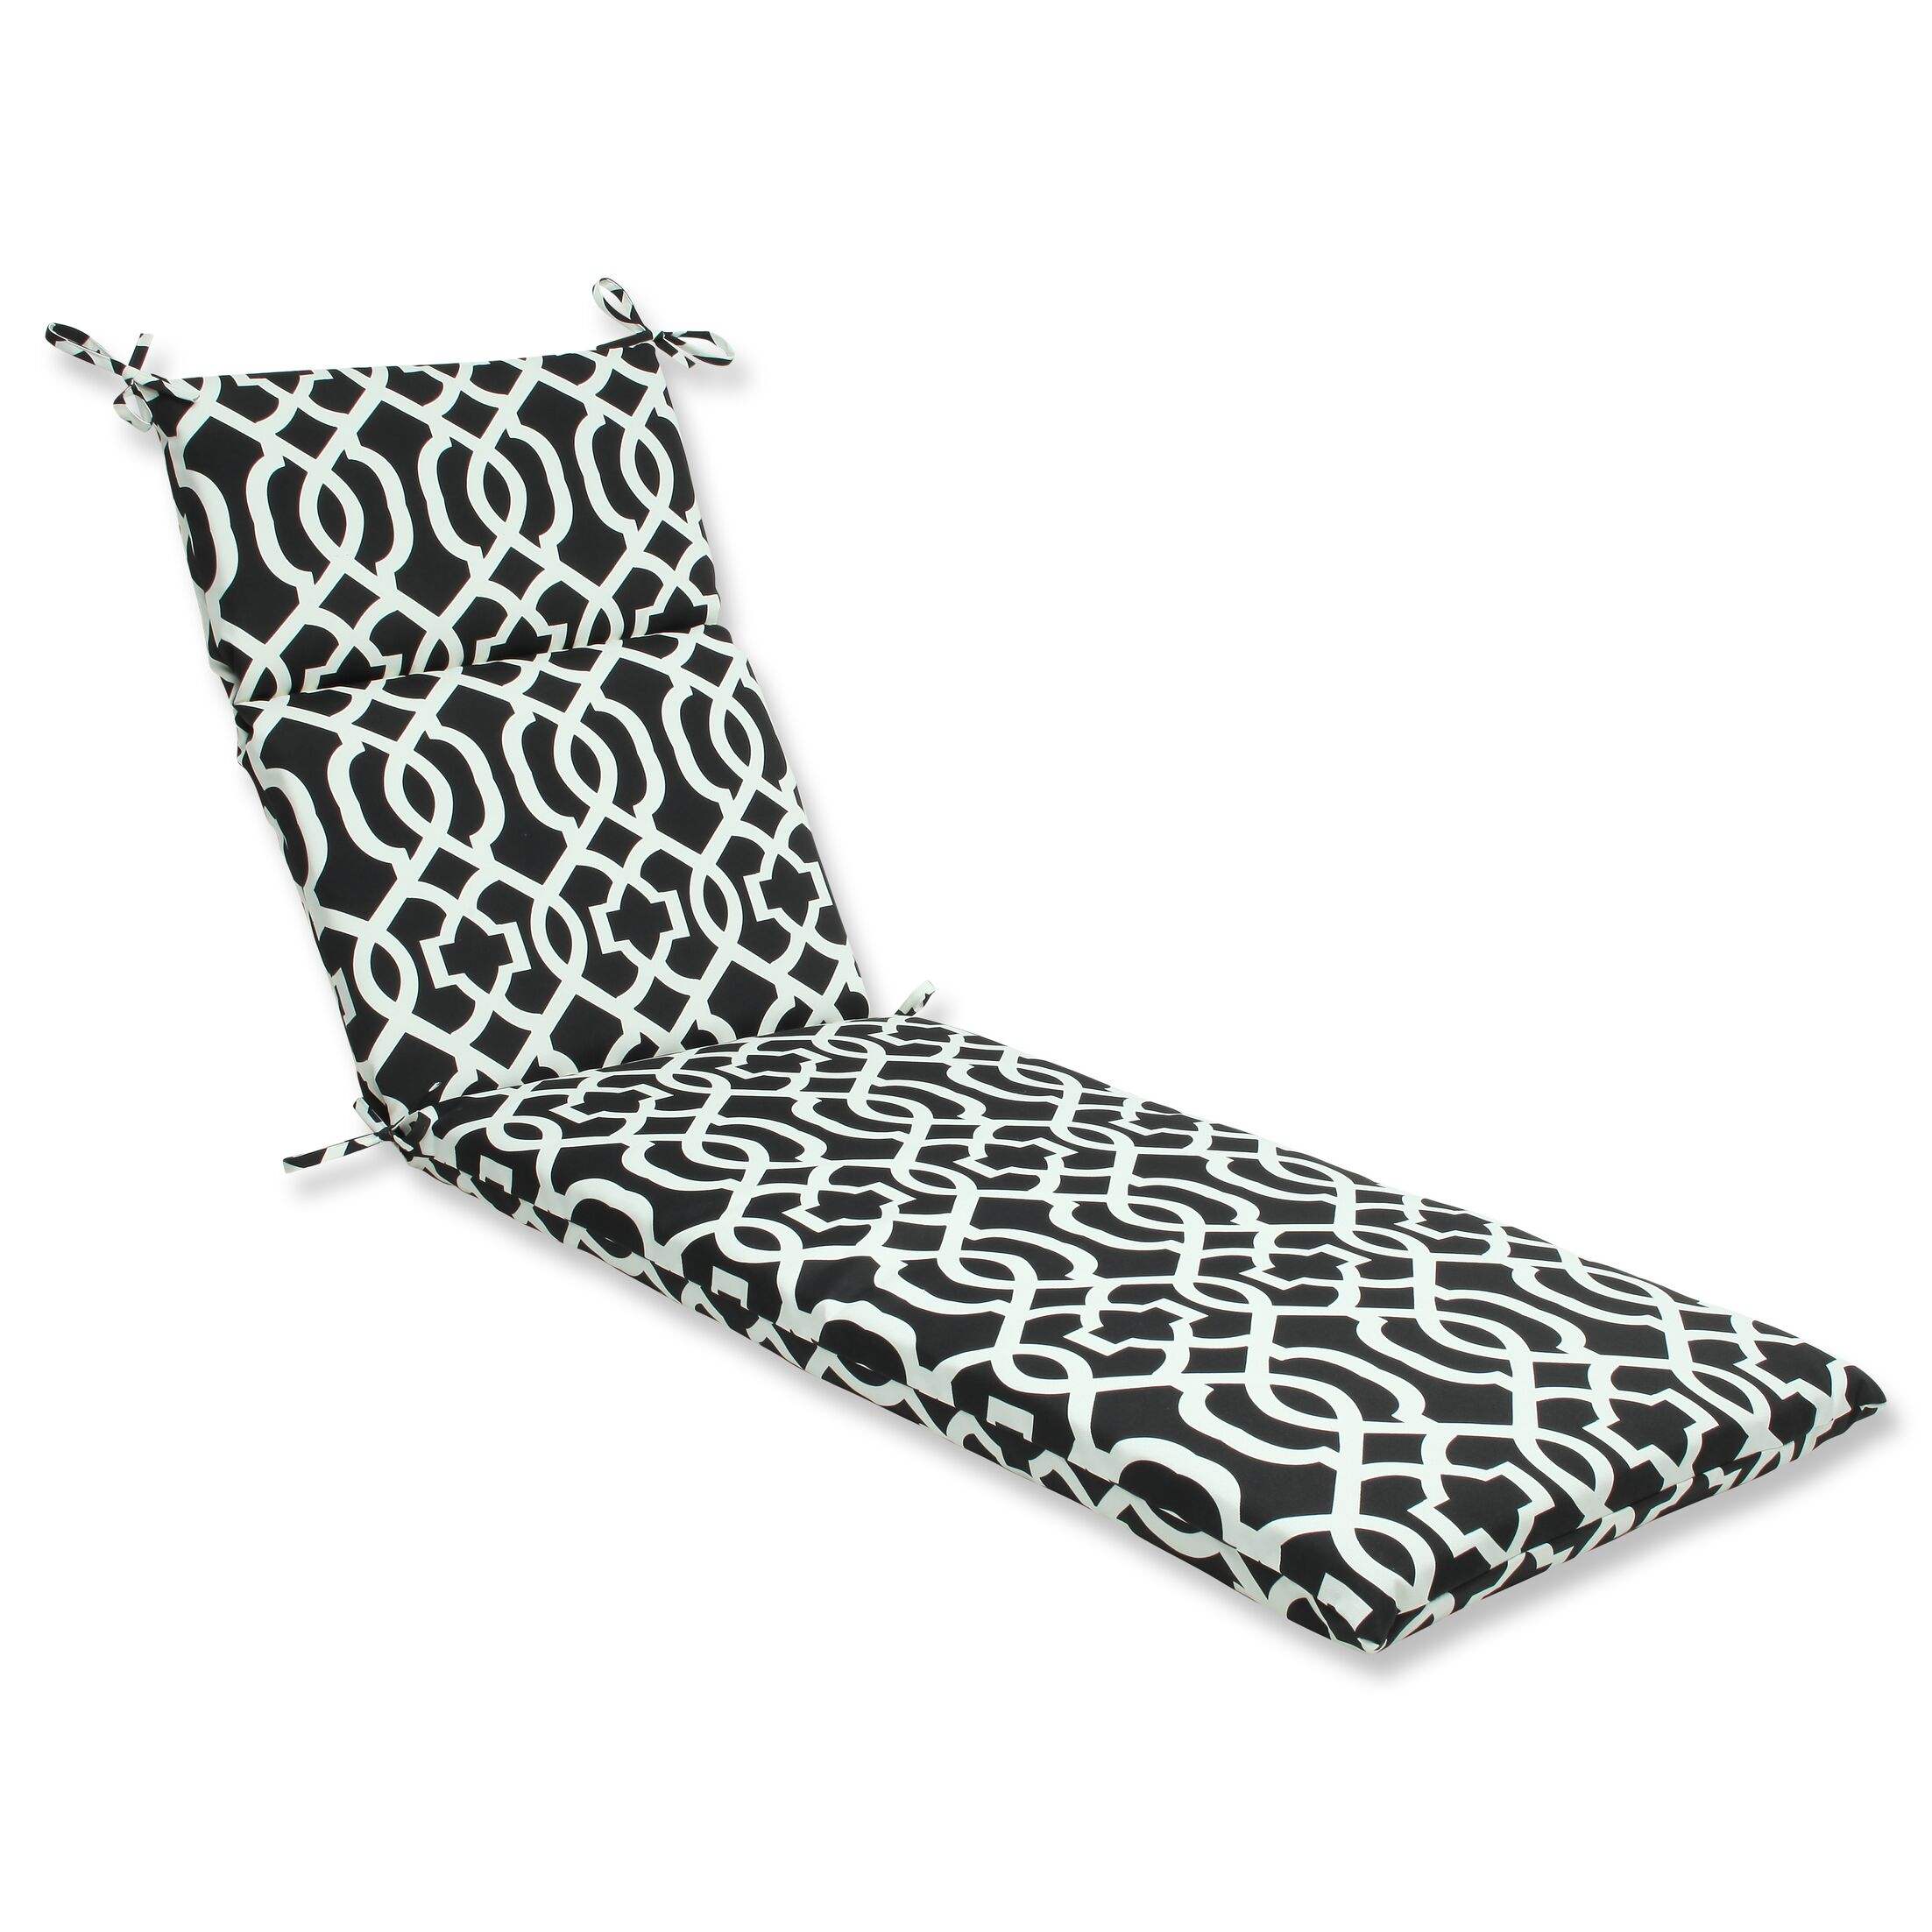 New Geo Indoor/Outdoor Chaise Lounge Cushion Fabric: Black / White